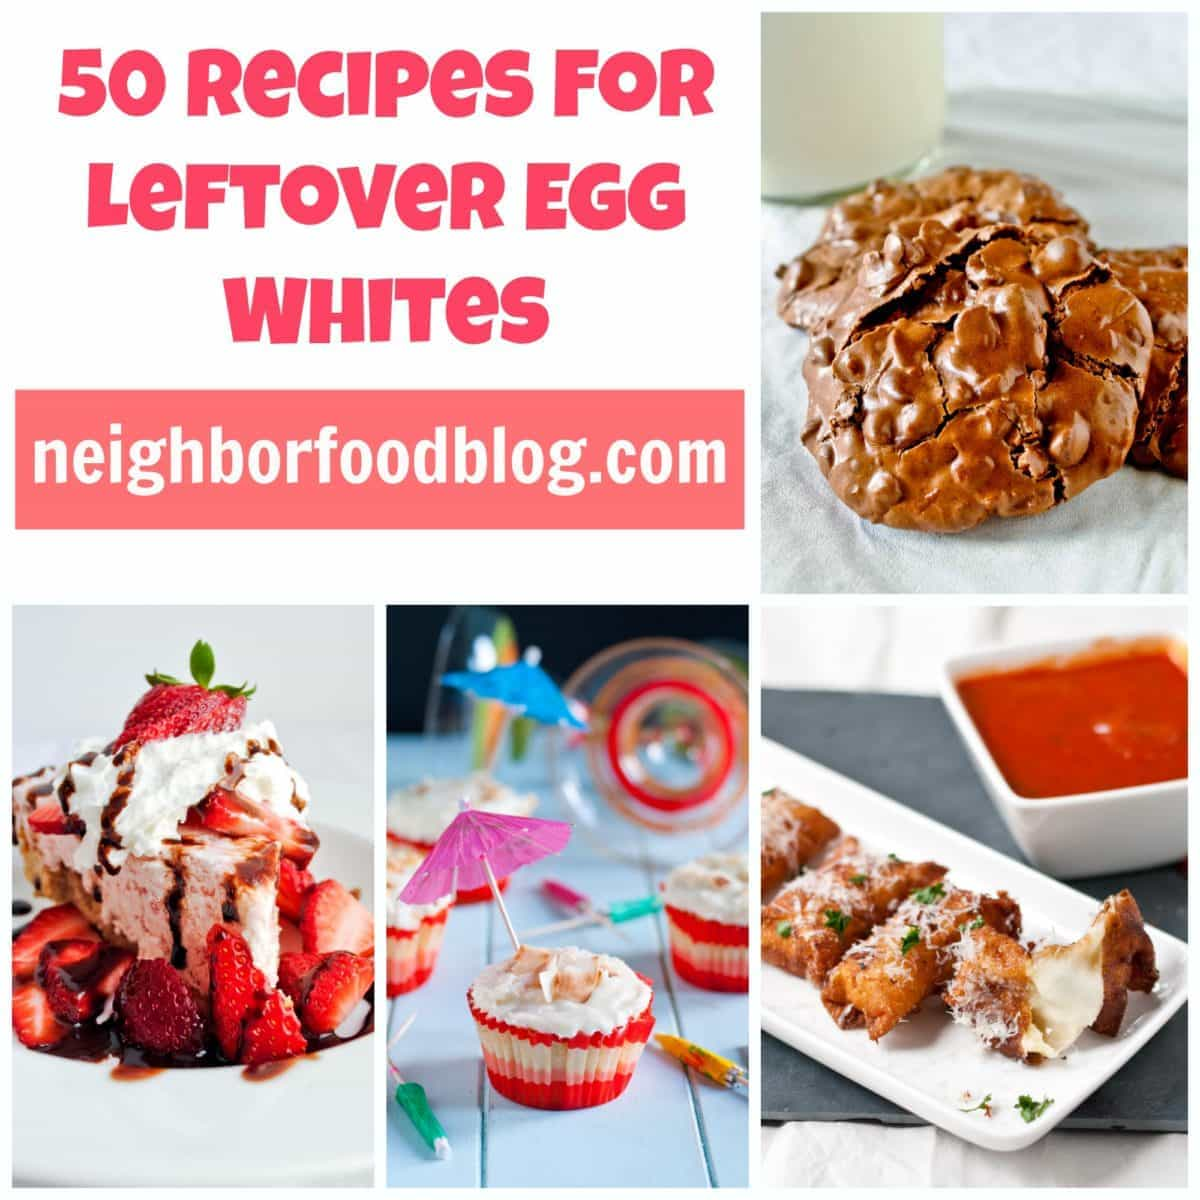 50 Recipes To Use Up Leftover Egg Whites